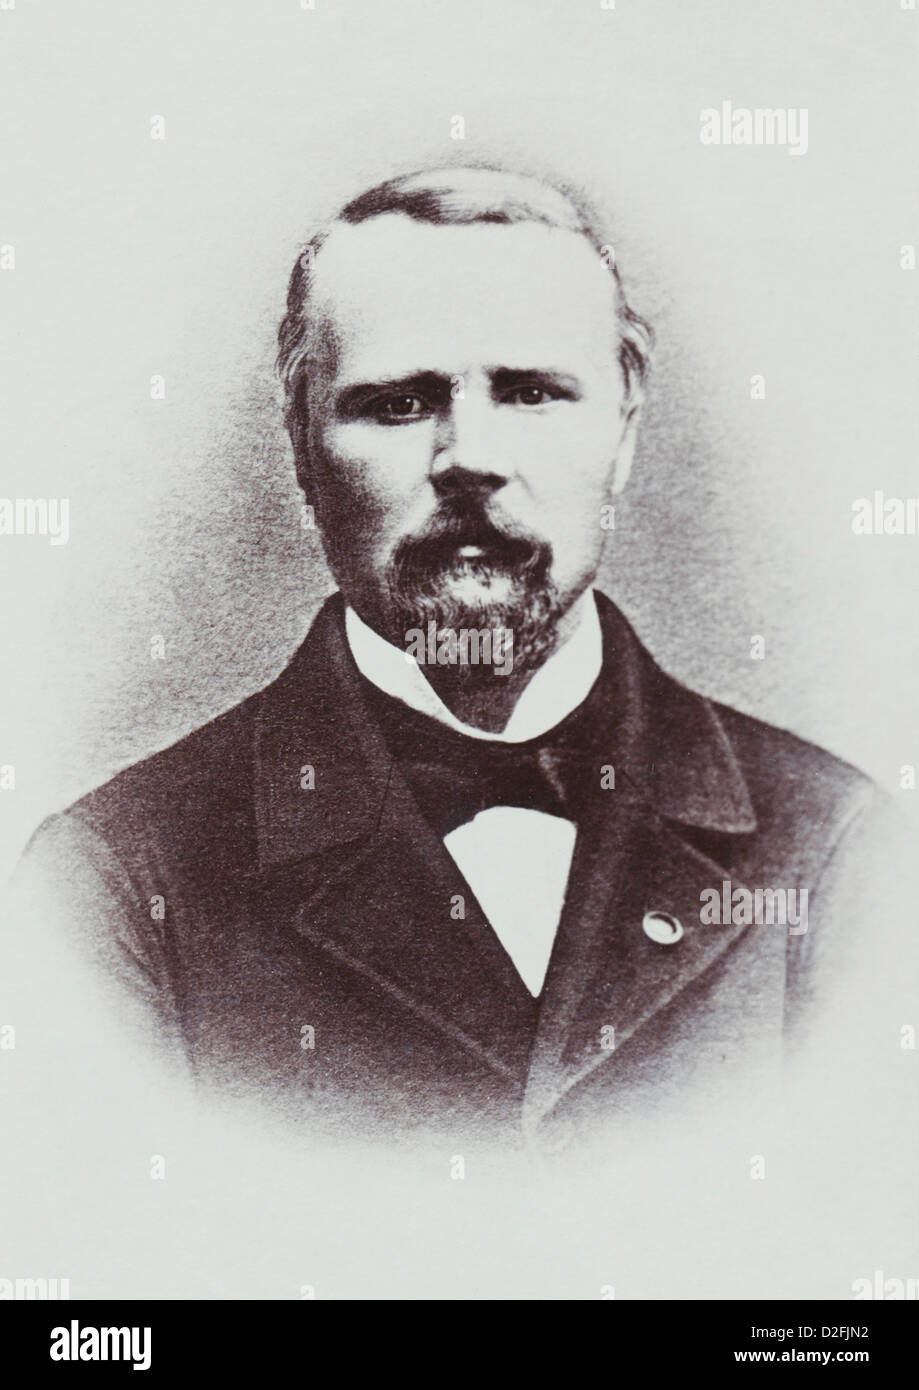 Pierre Louis Charles Achille de Failly, 1810-1892, French General in the Franco-Prussian War or Franco-German War 1870-1871 Stock Photo